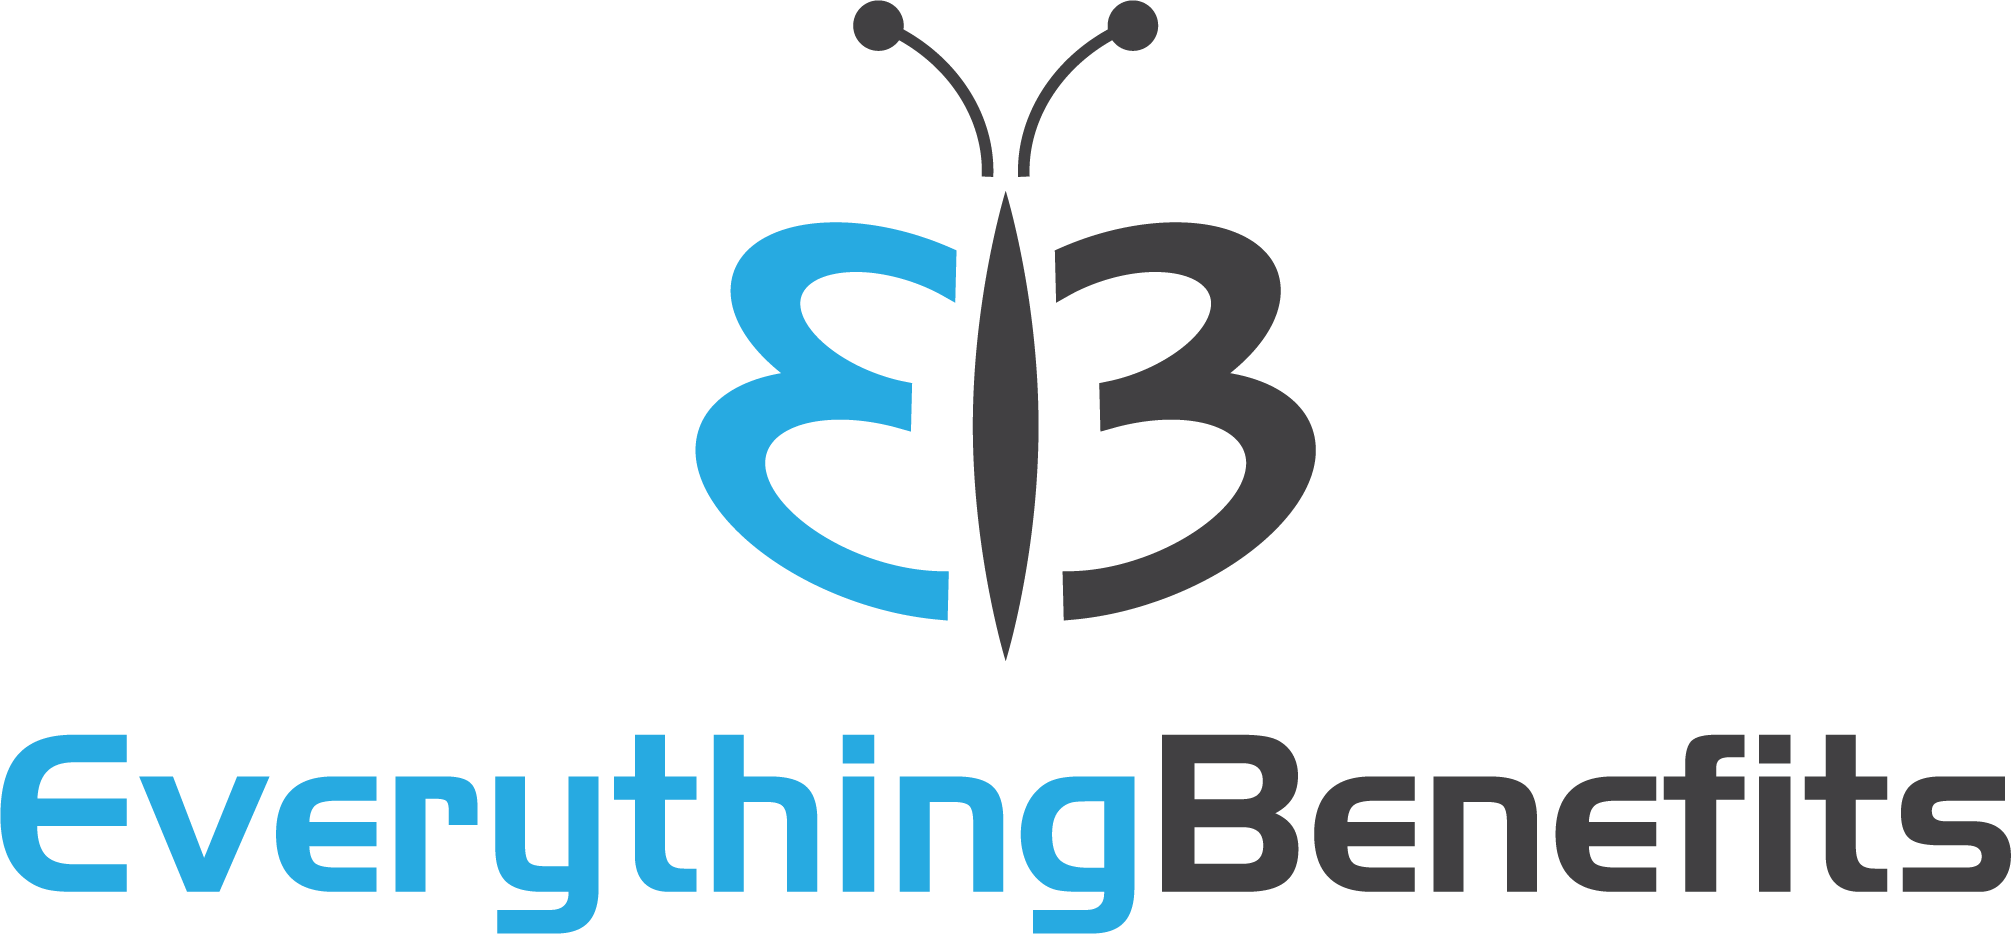 everythingbenefits onemint partner network